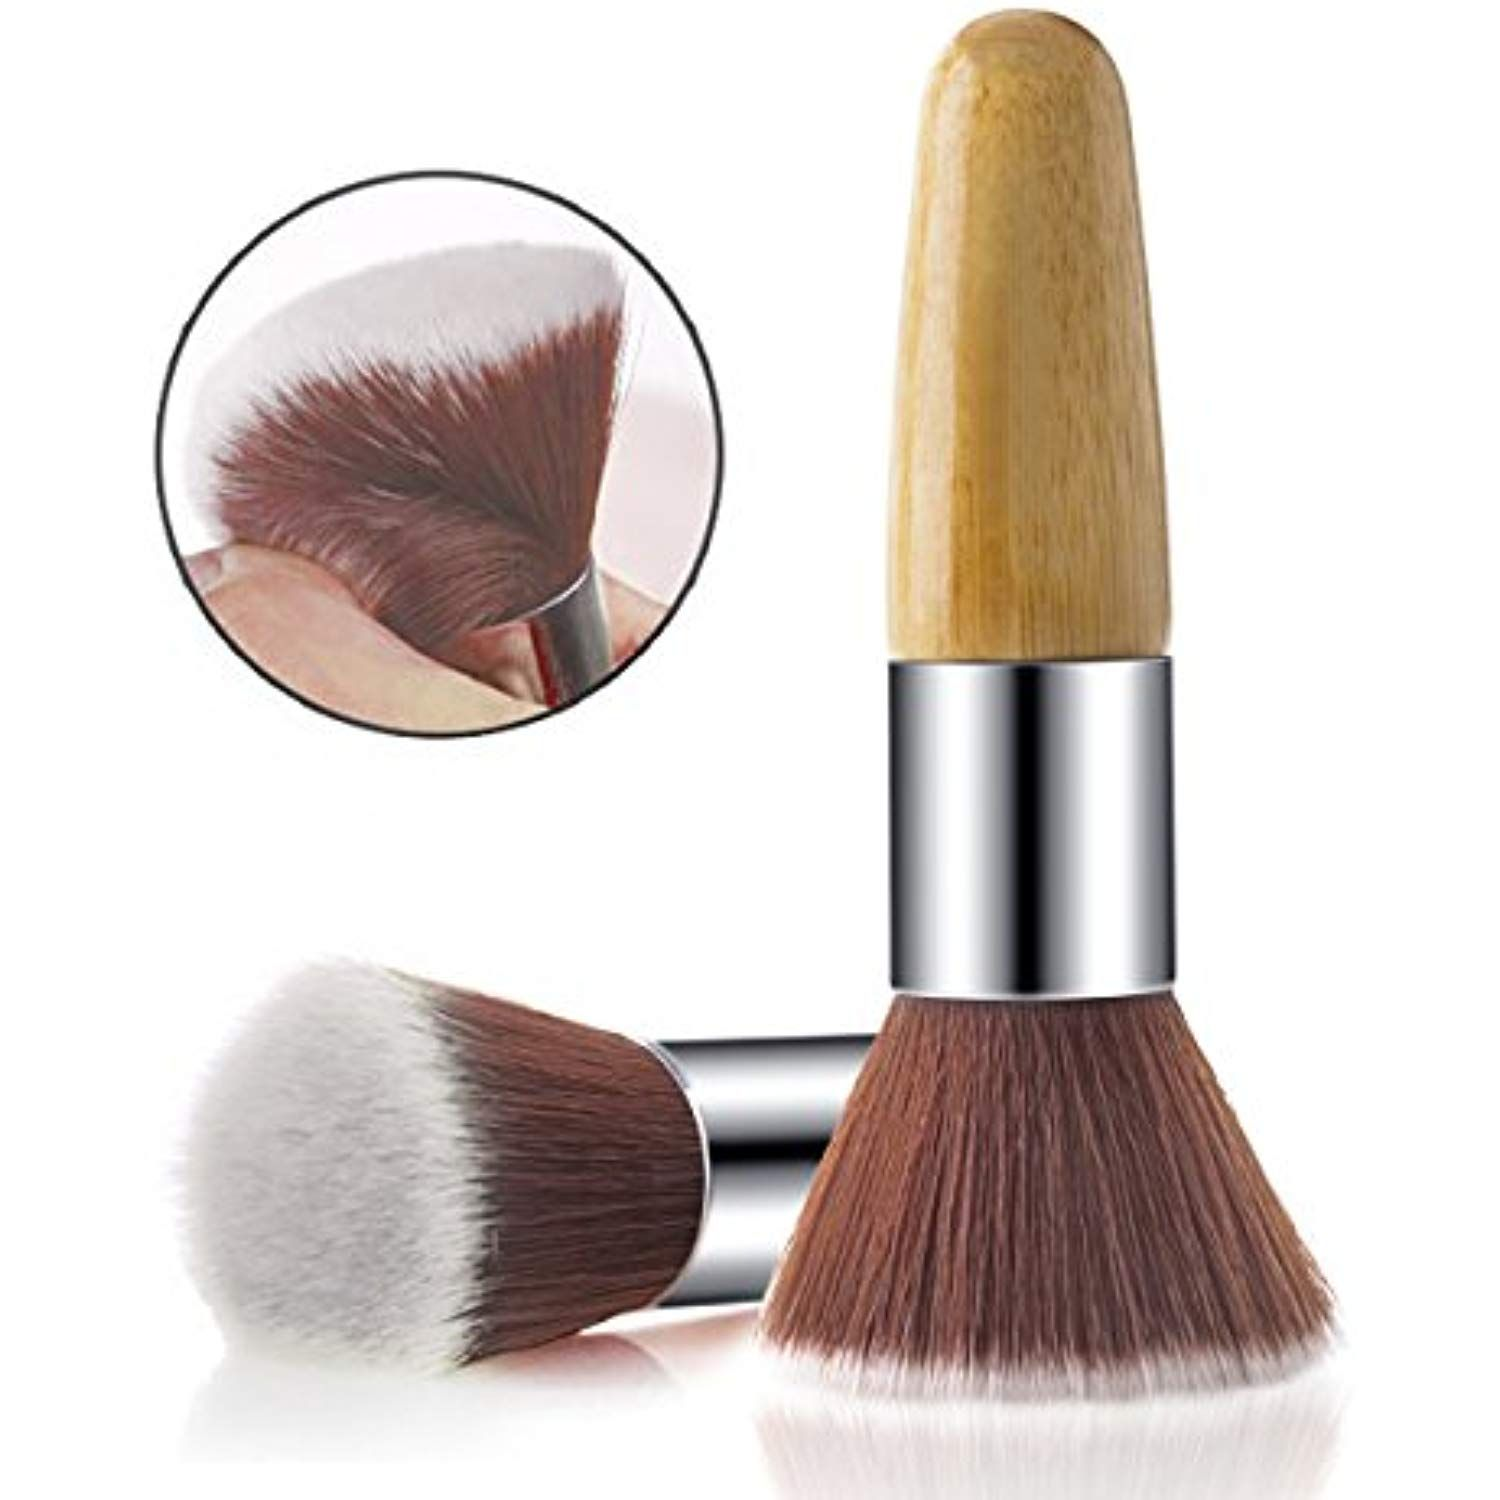 Rosette Multipurpose Bamboo Flat Kabuki Makeup Brush for